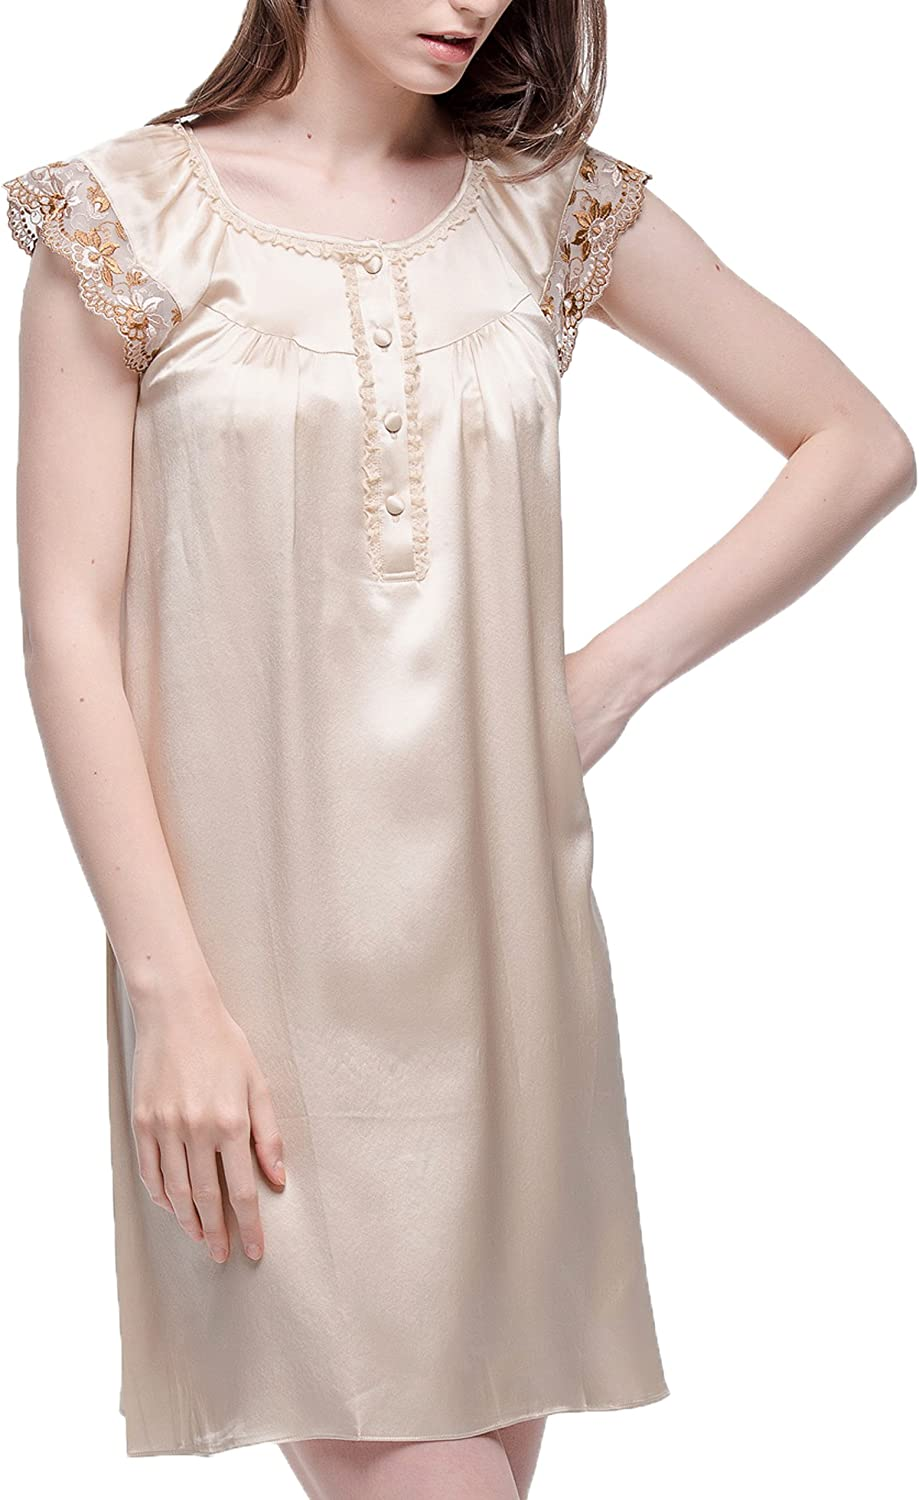 Chesslyre 100% Mulberry Silk Solid Lace Trimmed Women Nightgown Sleepwear